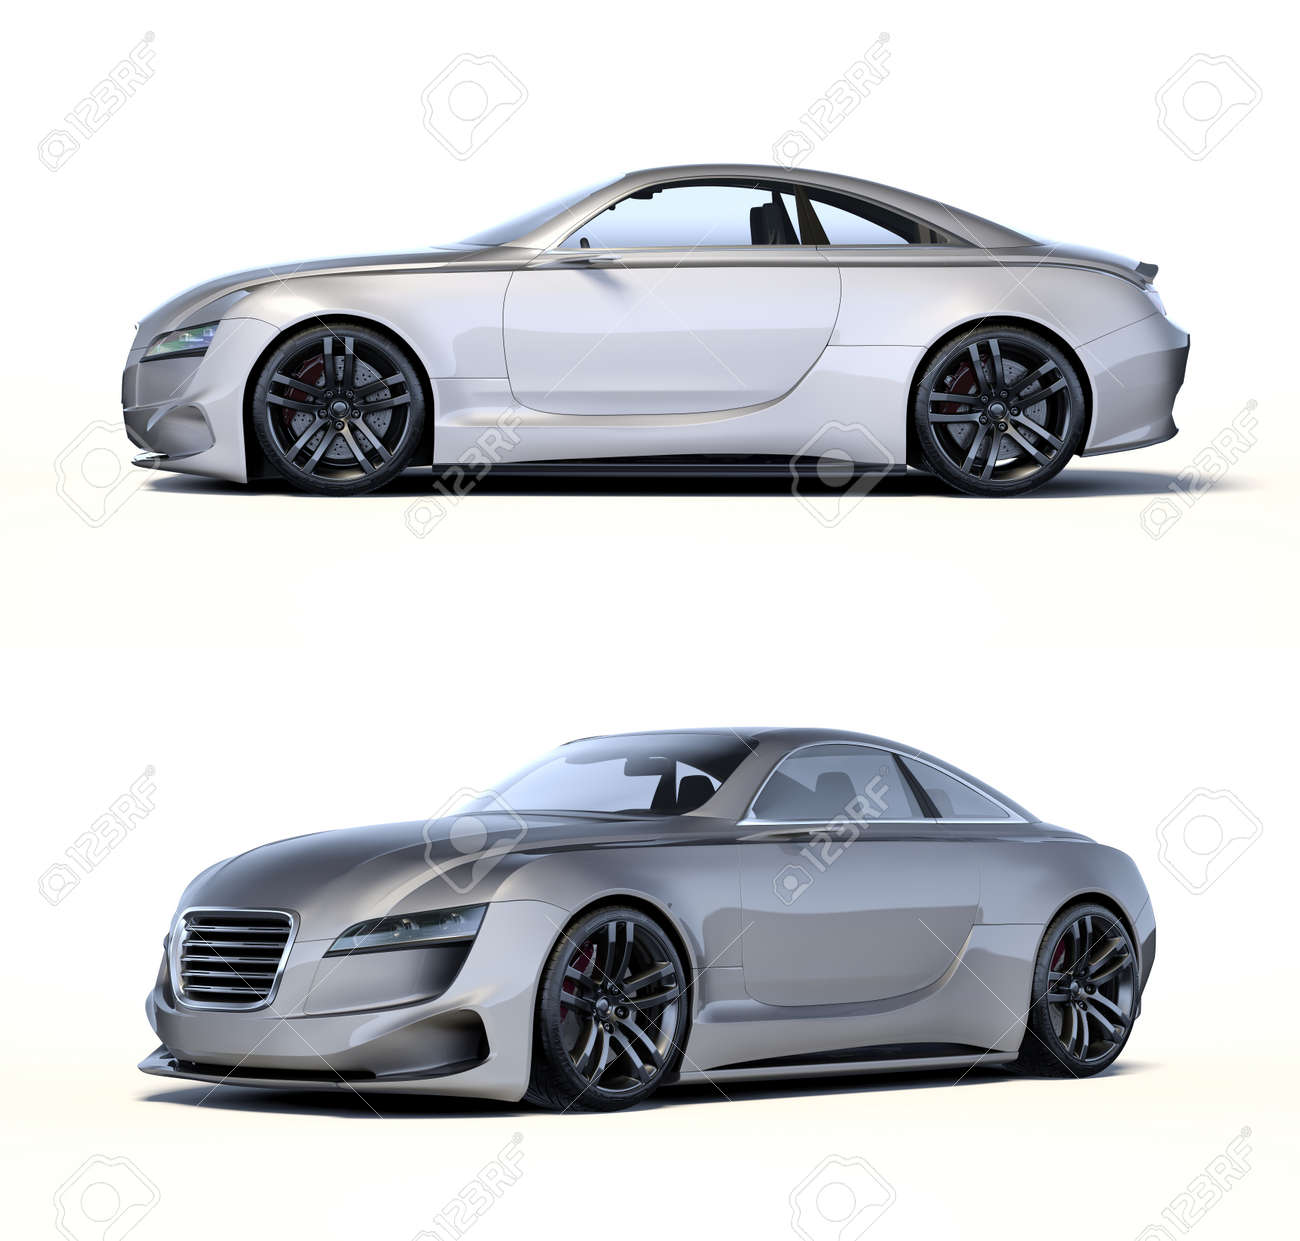 3D rendering of a brand-less generic concept car in studio environment - 158610286